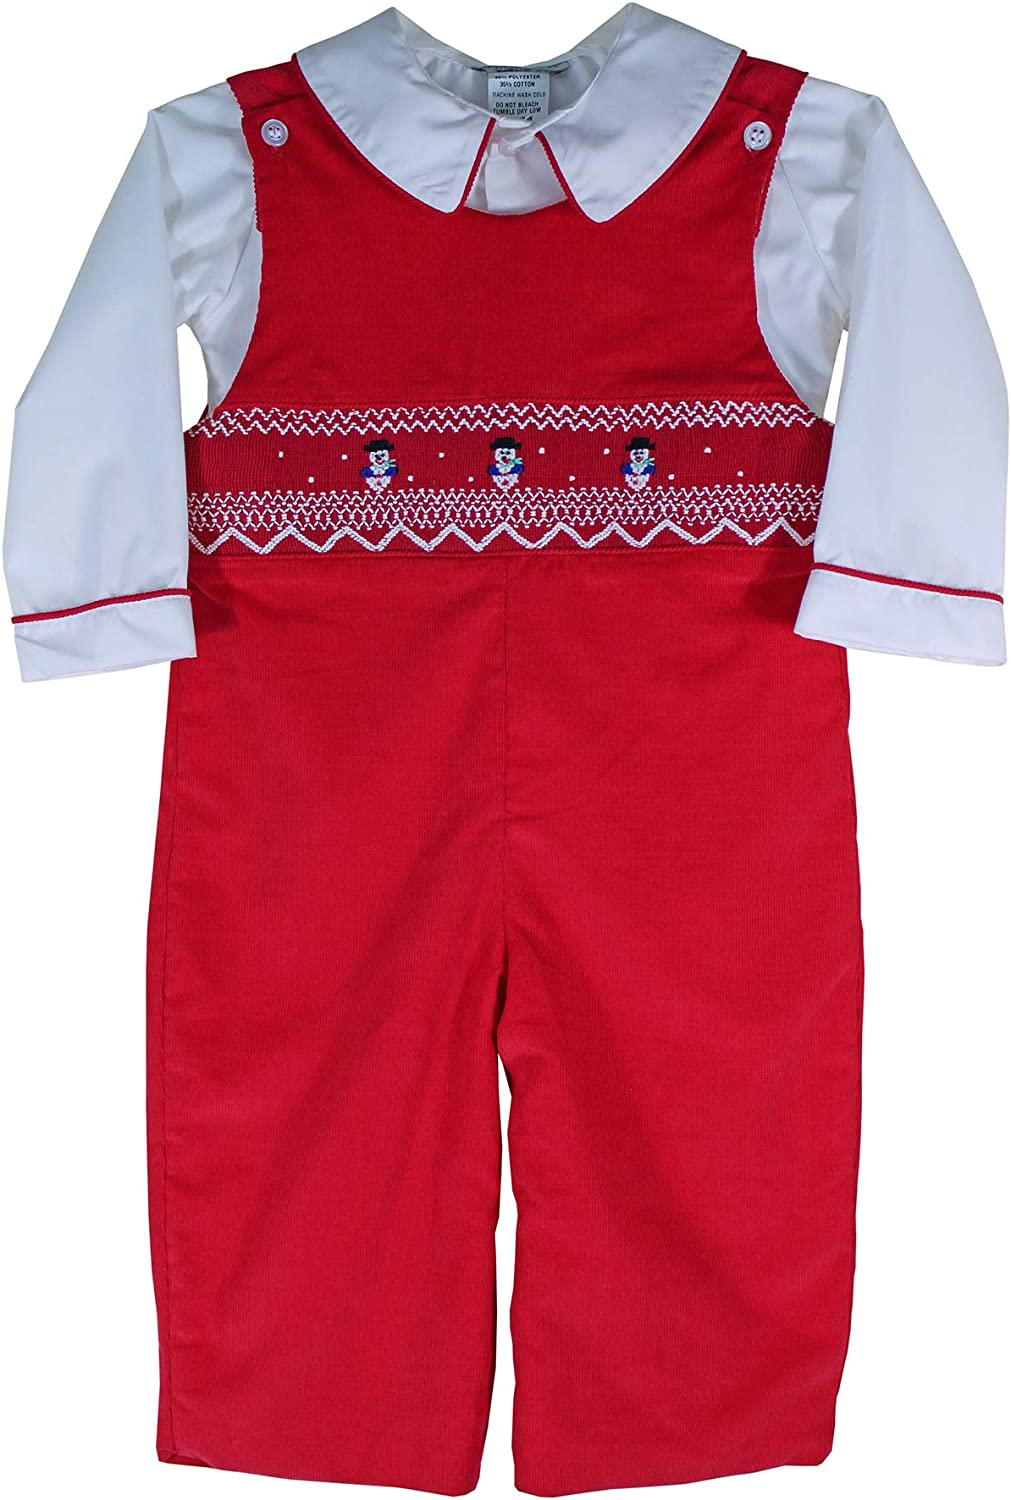 Hand Smocked Snowman Red Christmas Dresses for Baby Girls and Toddlers